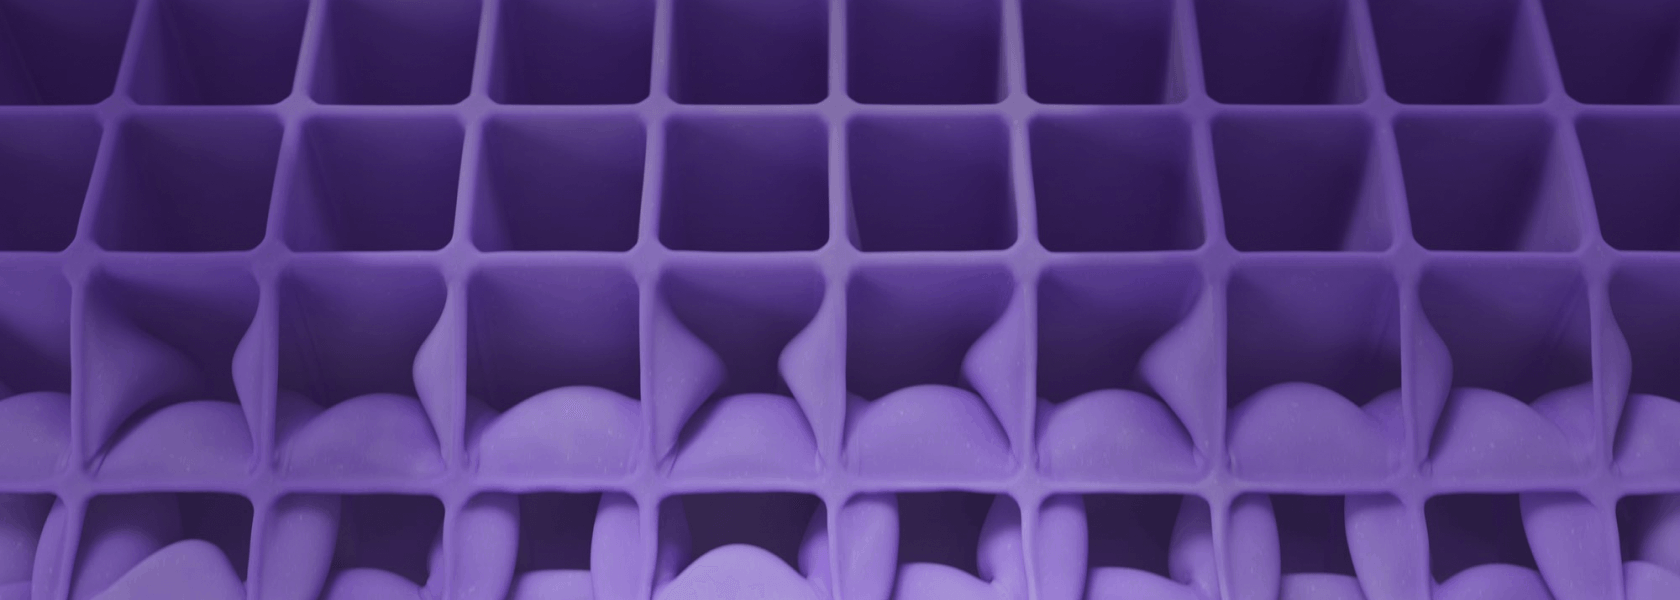 https://assets.purple.com/images/purple-grid-hp-hero_200605_234125.png?mtime=20200605174127